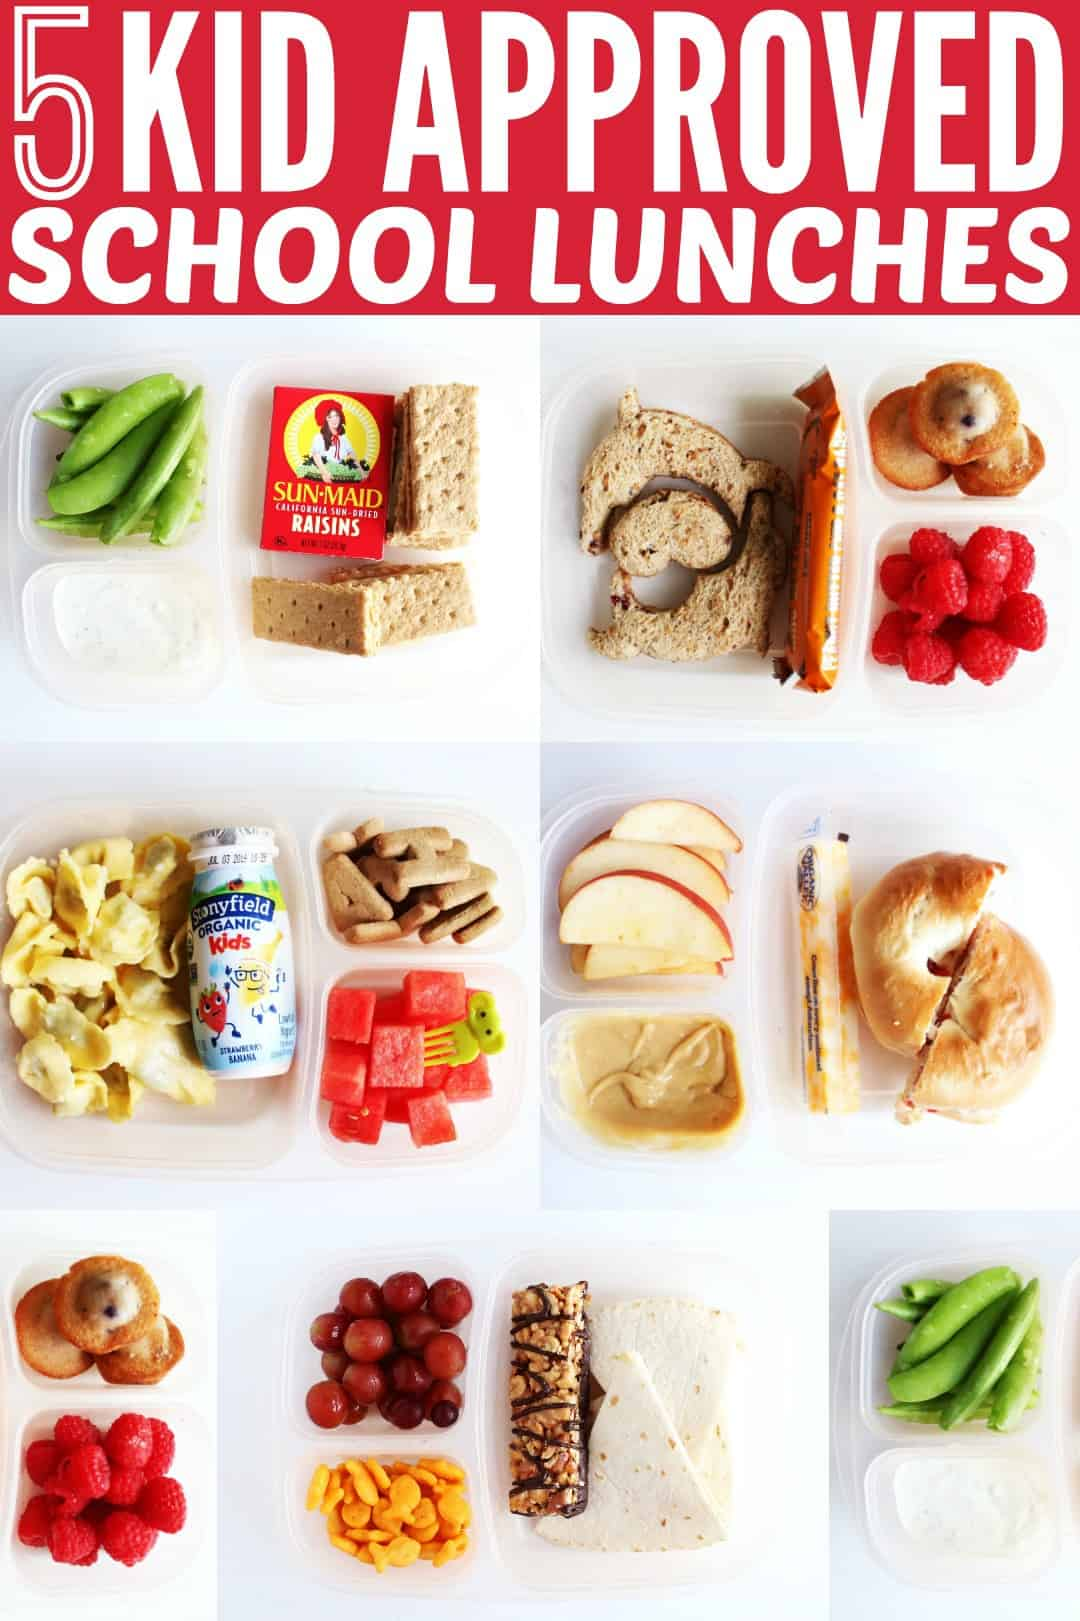 I'm always looking for new meal ideas for my kids, so today I'm sharing Five School Lunchbox Ideas that are totally kid approved! thetoastedpinenut.com #thetoastedpinenut #kid #kidapproved #school #schoollunch #lunchbox #ideas #kidmeals #kidlunch